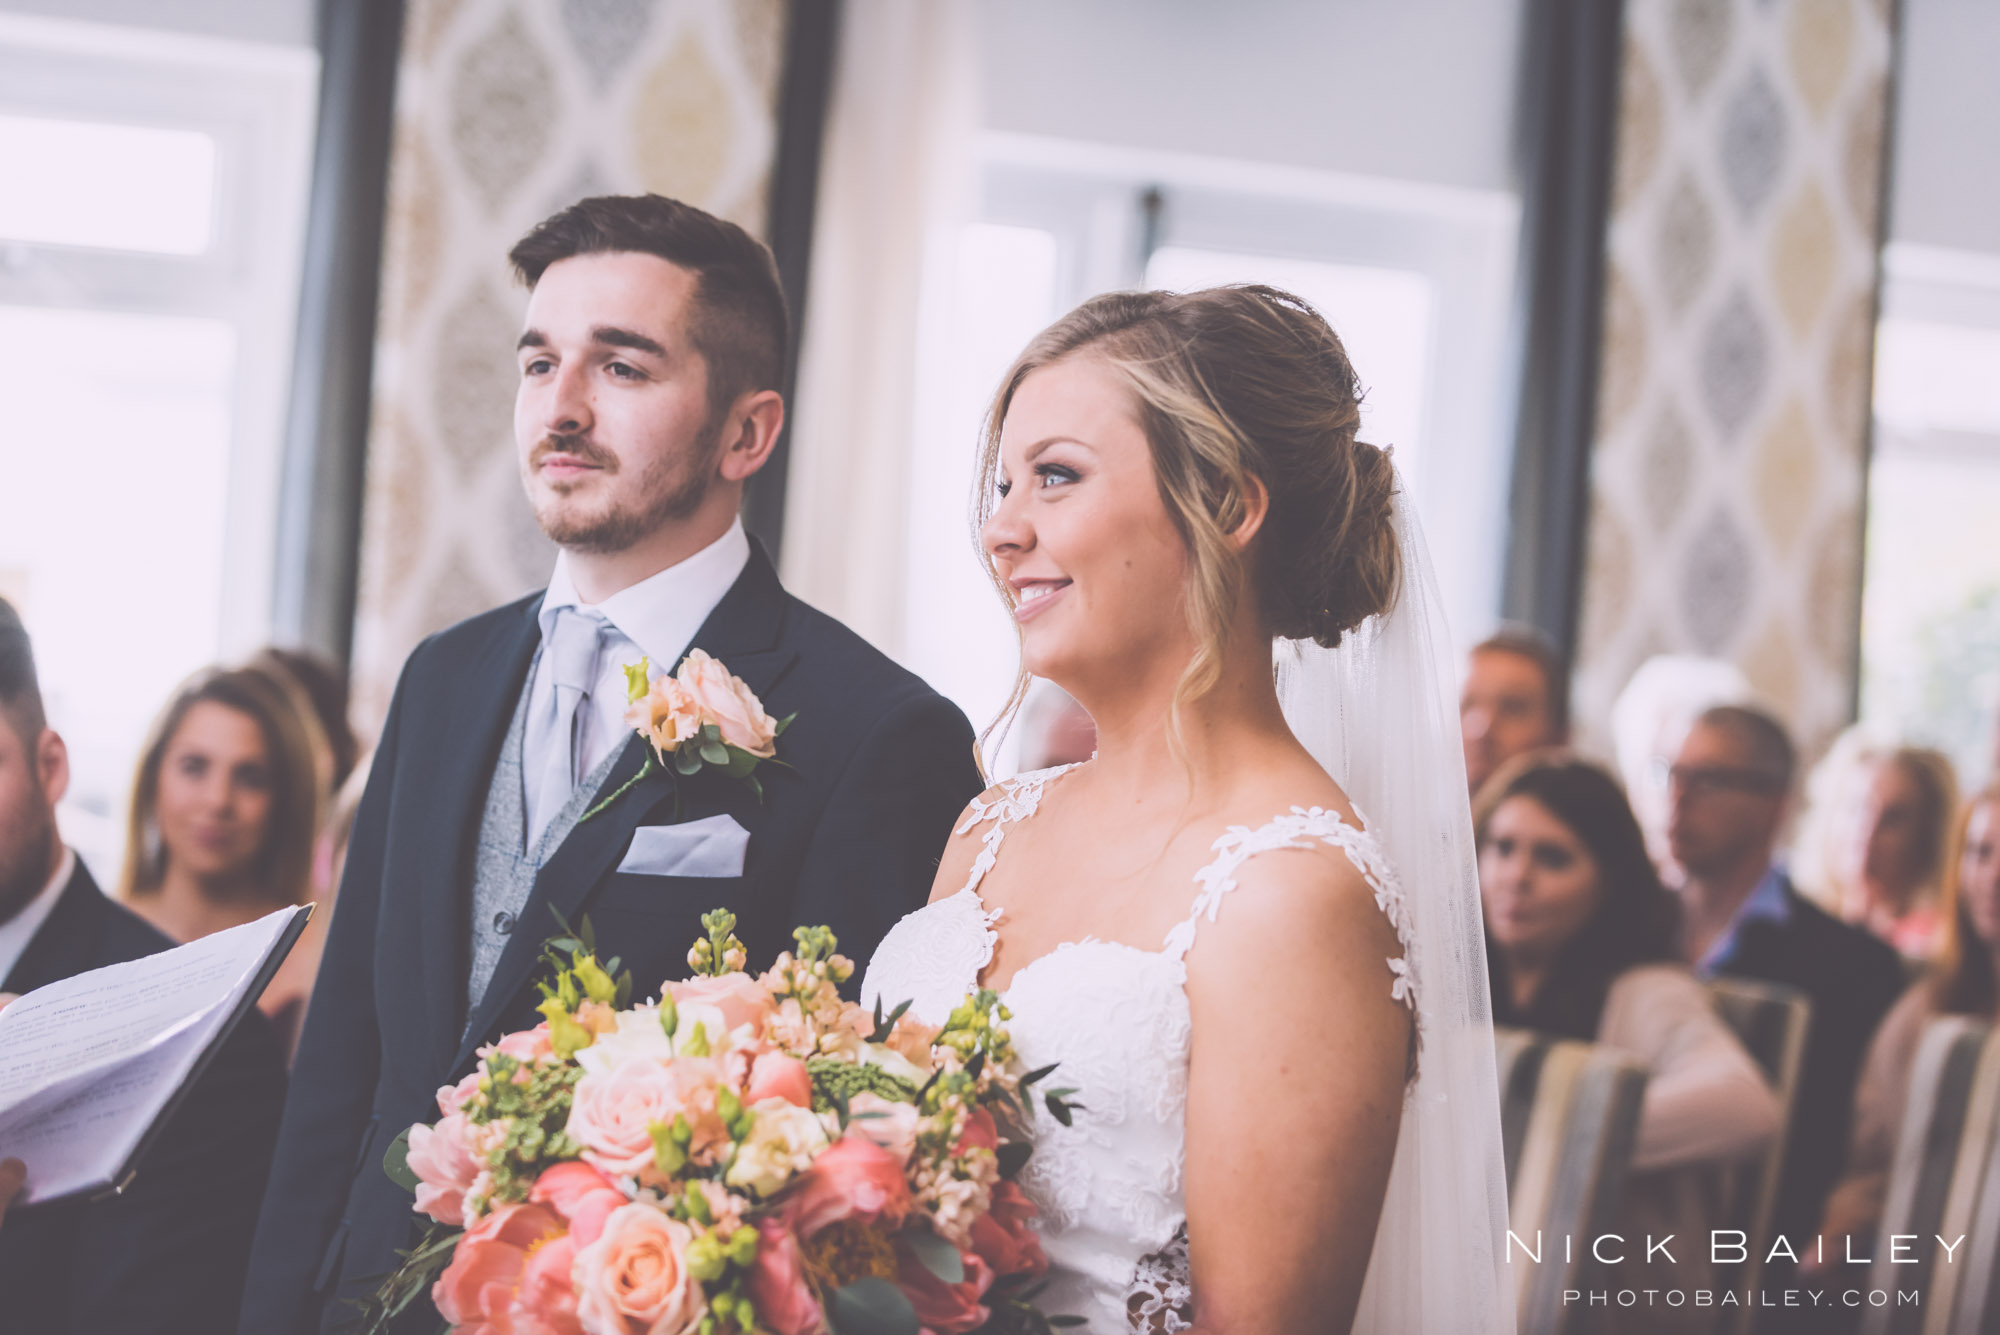 Carbis-Bay-Hotel-Wedding-Photography-26.jpg